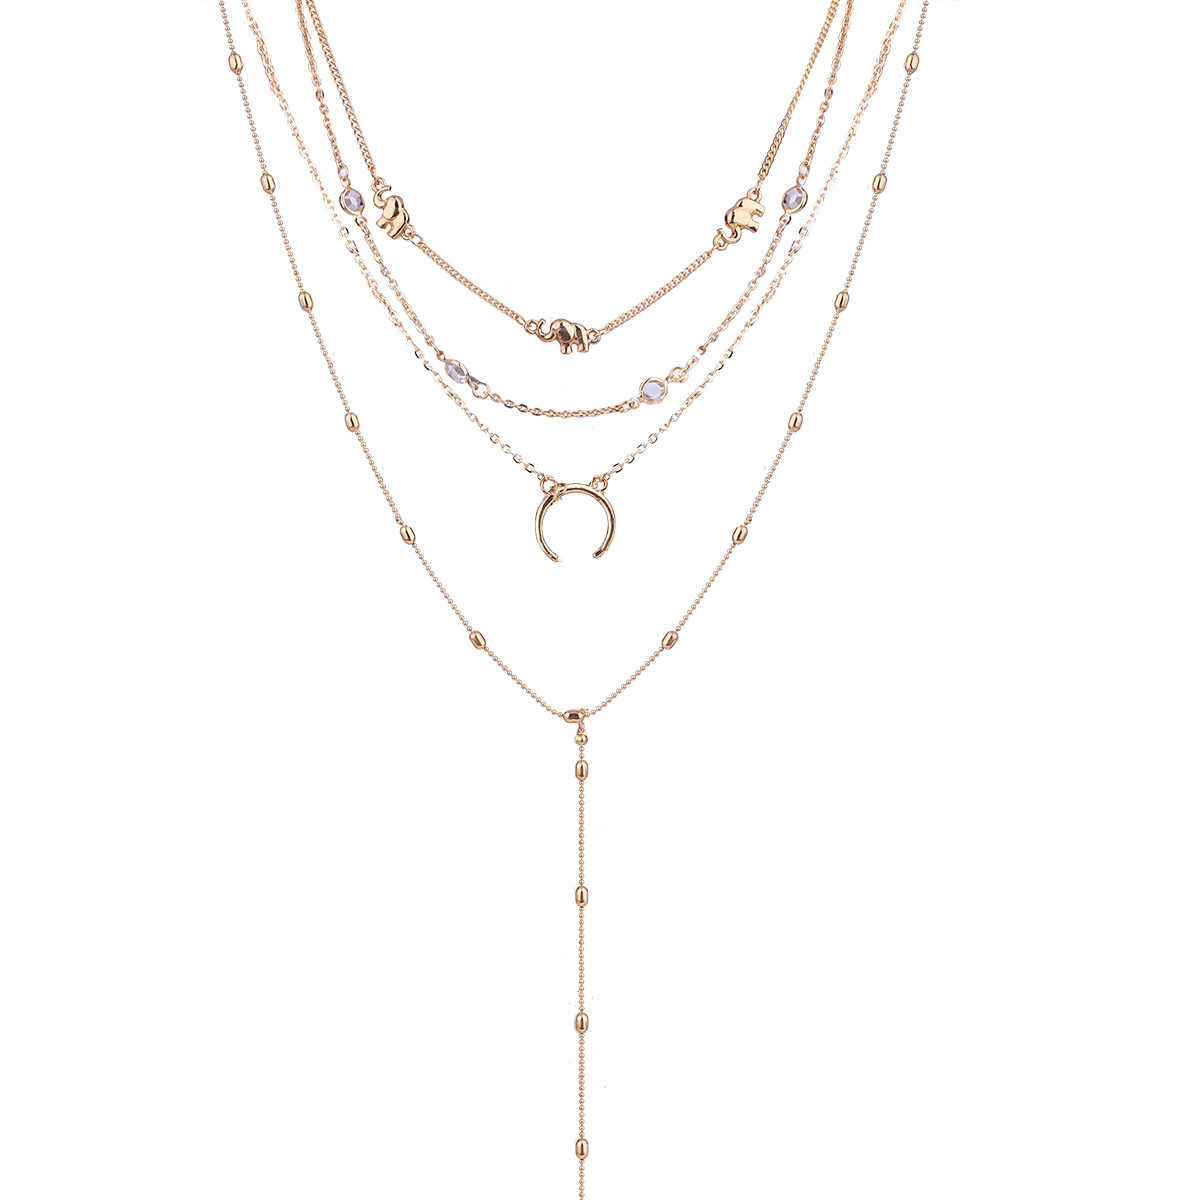 73b1dcc7c0 New Fashion Simplicity Style Gold Elephant Moon Small Element Pendant Multi  Layer Necklace Charm Sexy Clavicle